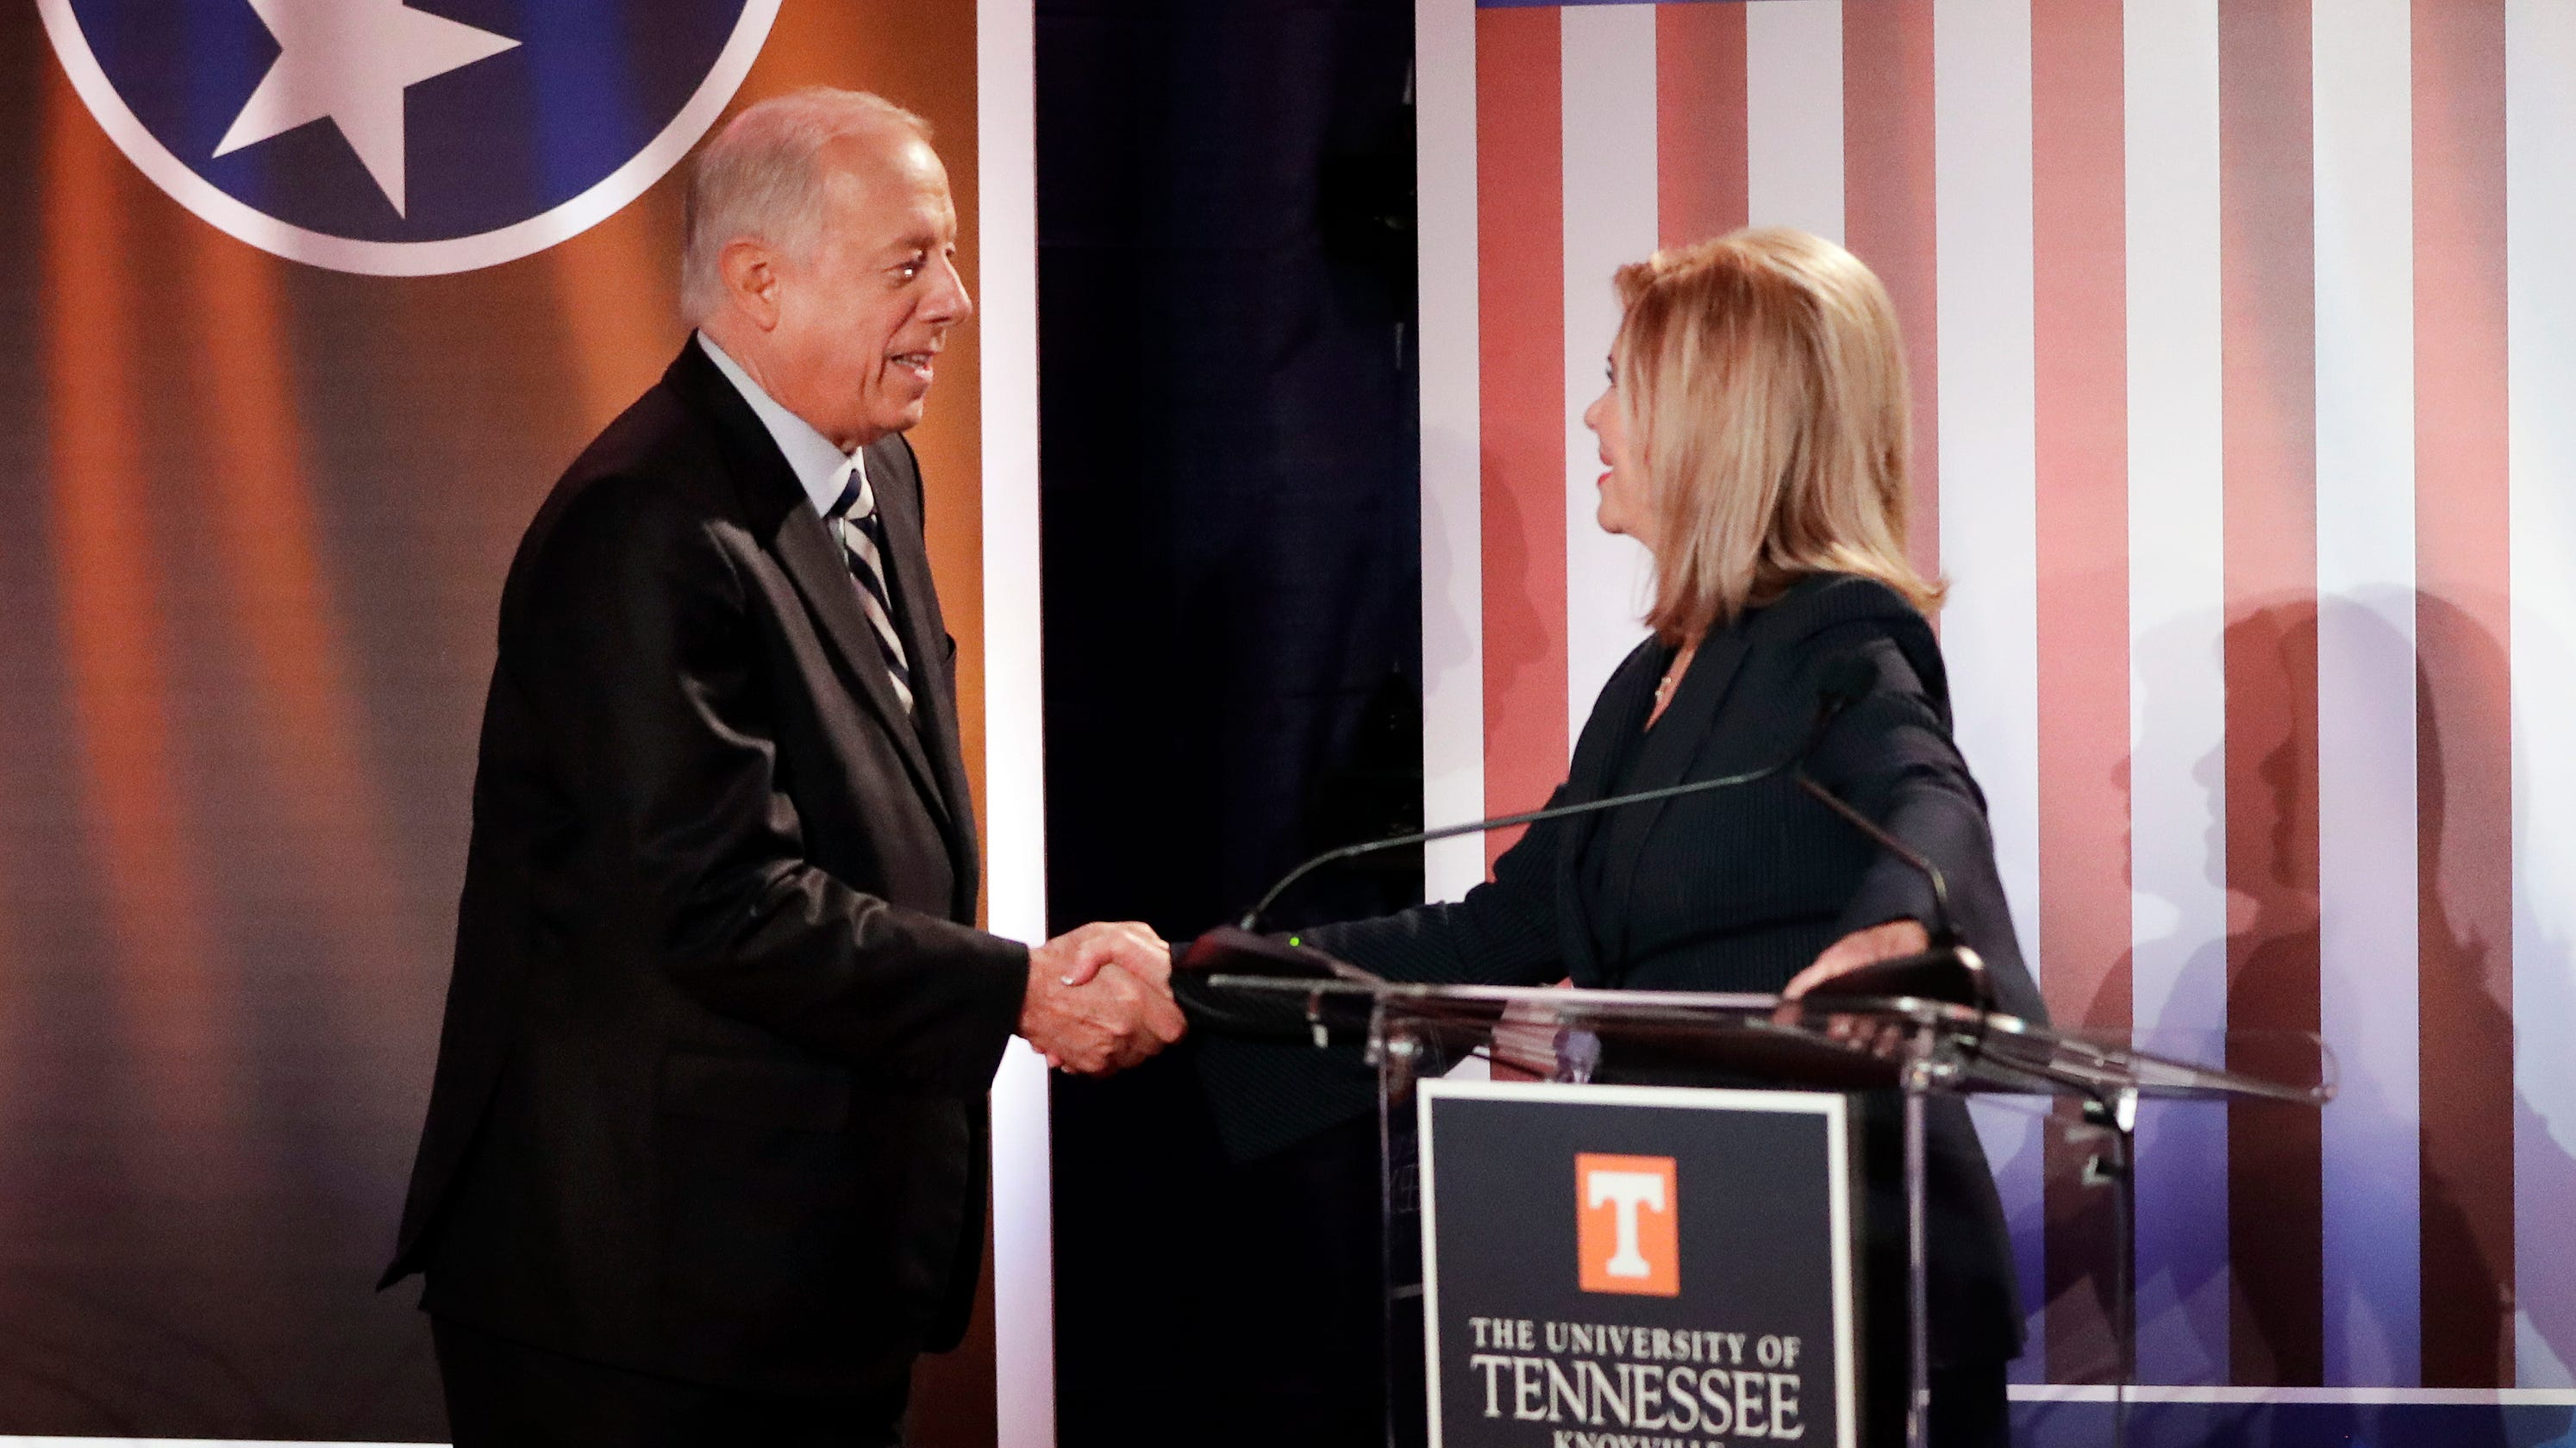 Tennessee elections: Blackburn, Bredesen spar in final debate